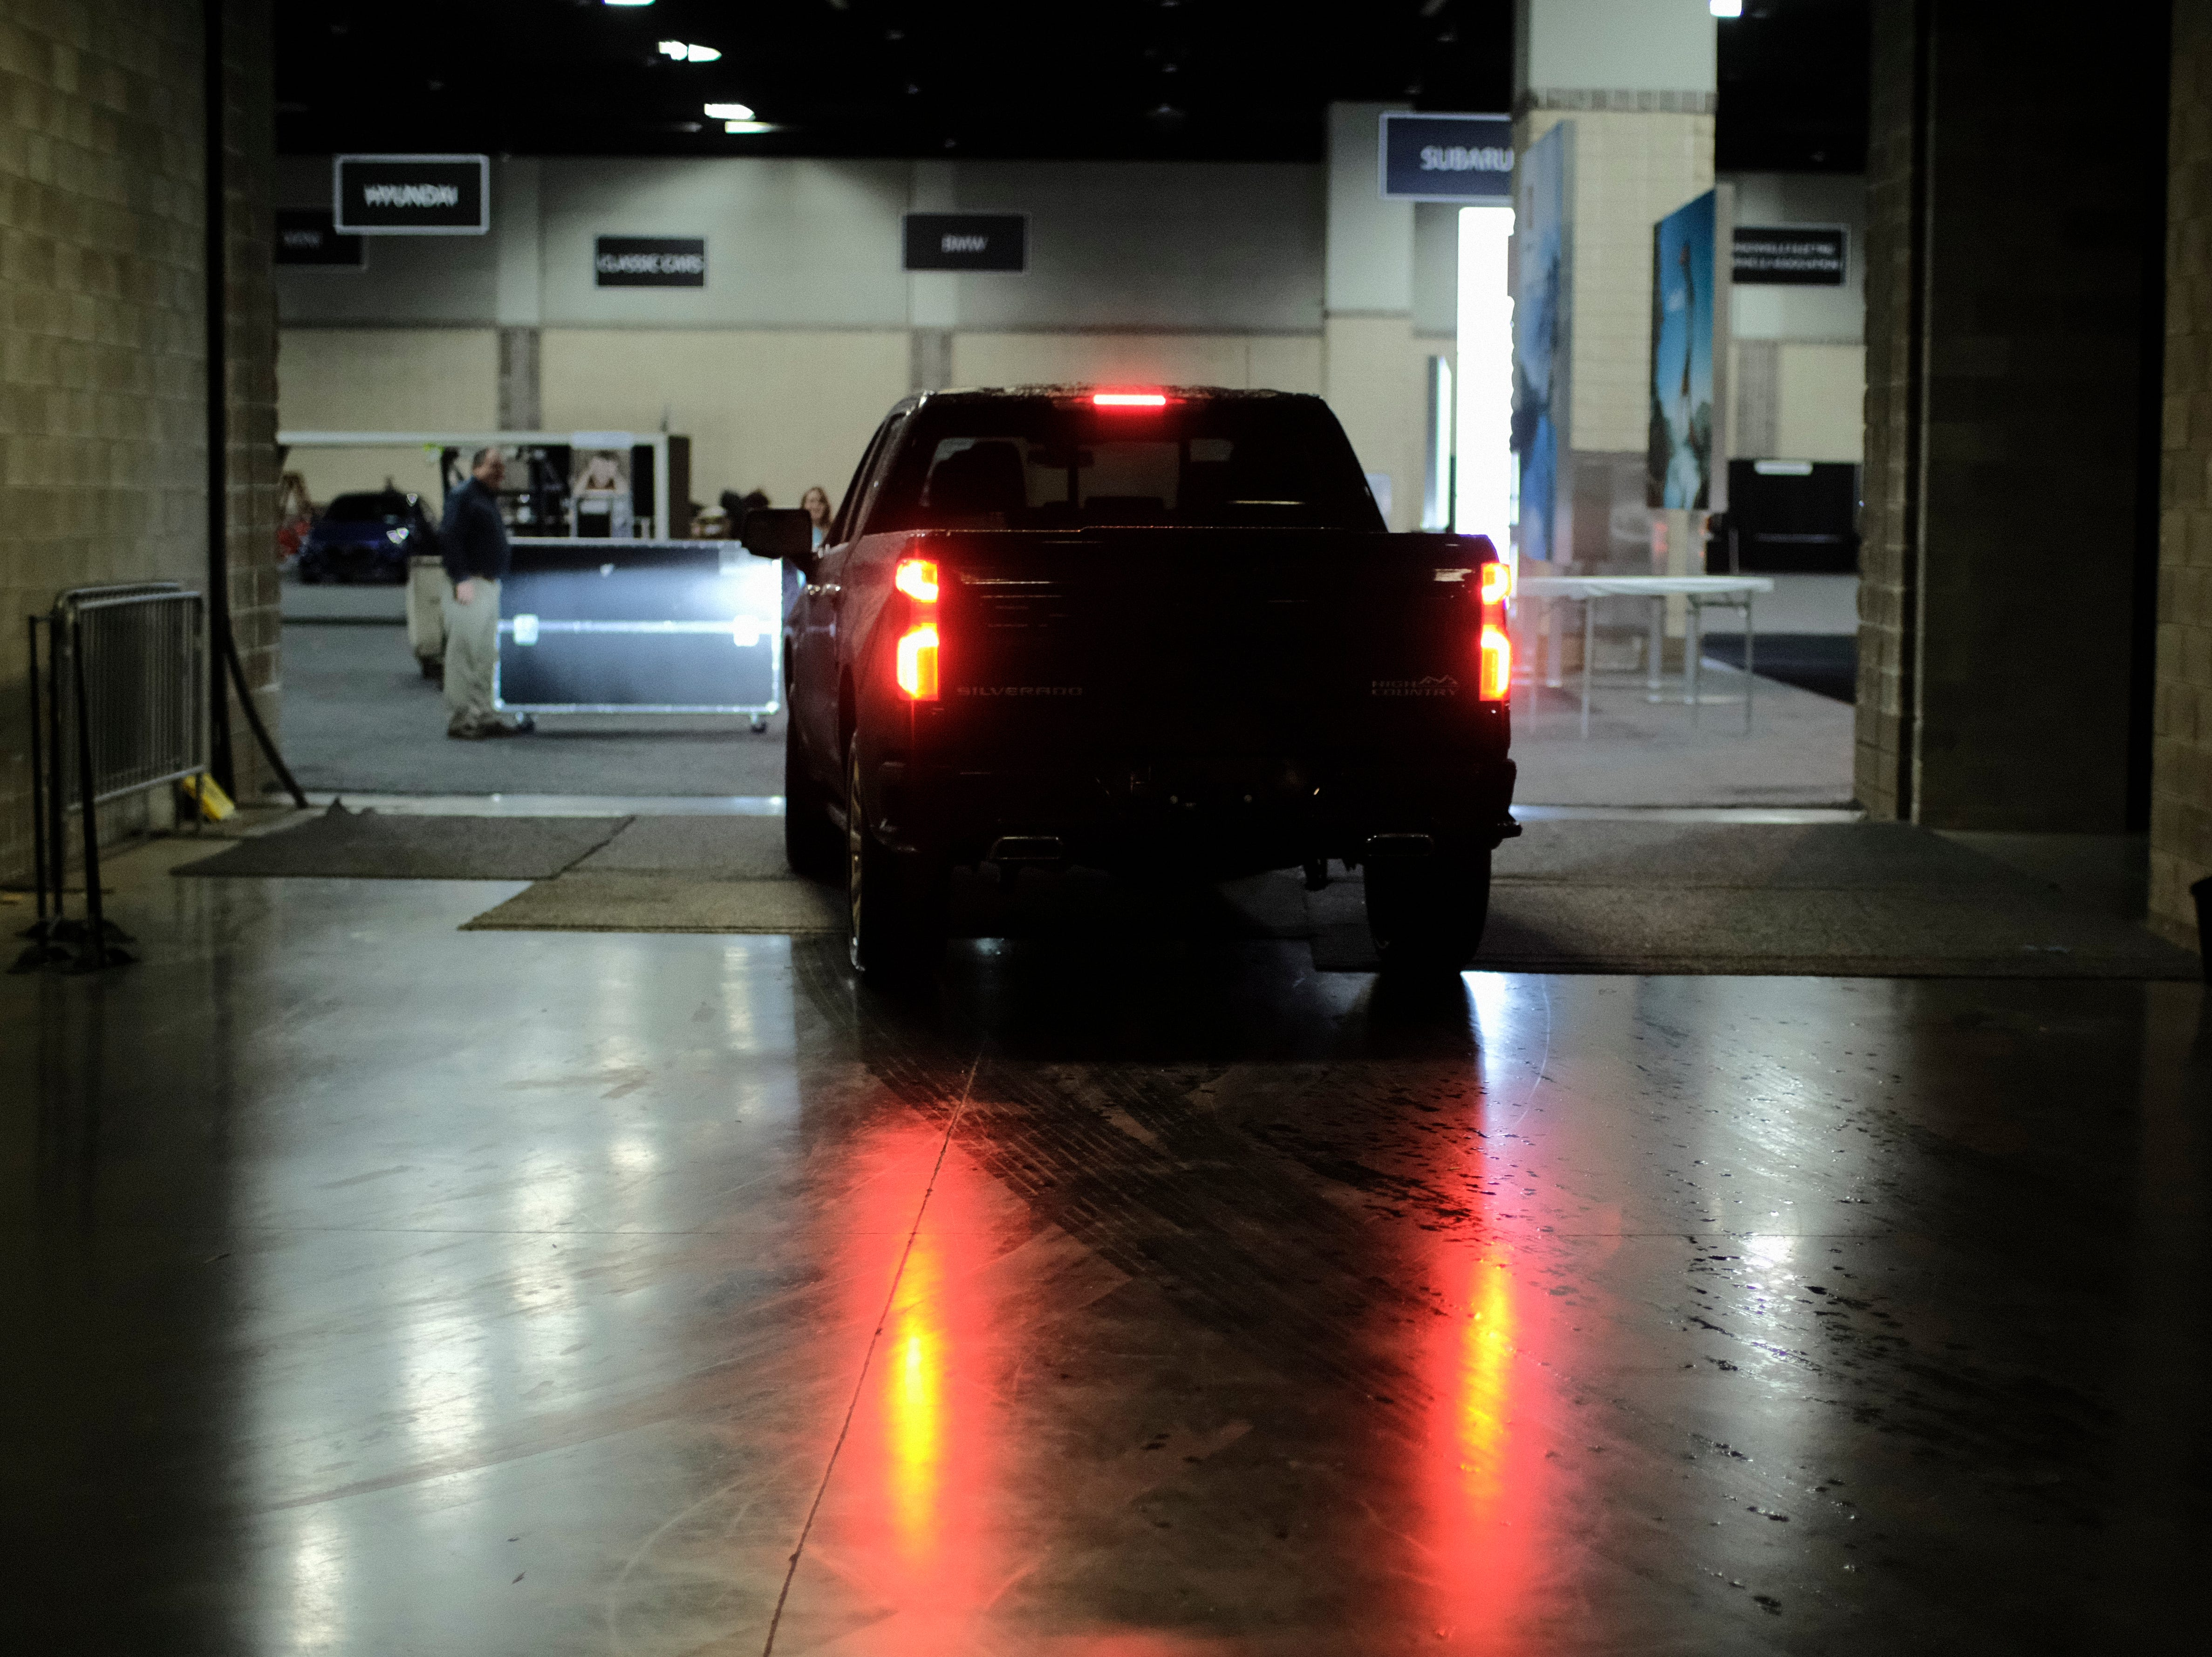 A Chevrolet Silverado High Country edition pickup truck enters the showroom at the Knox News Auto Show in the Knoxville Convention Center in Knoxville, Tennessee on Wednesday, February 20, 2019.